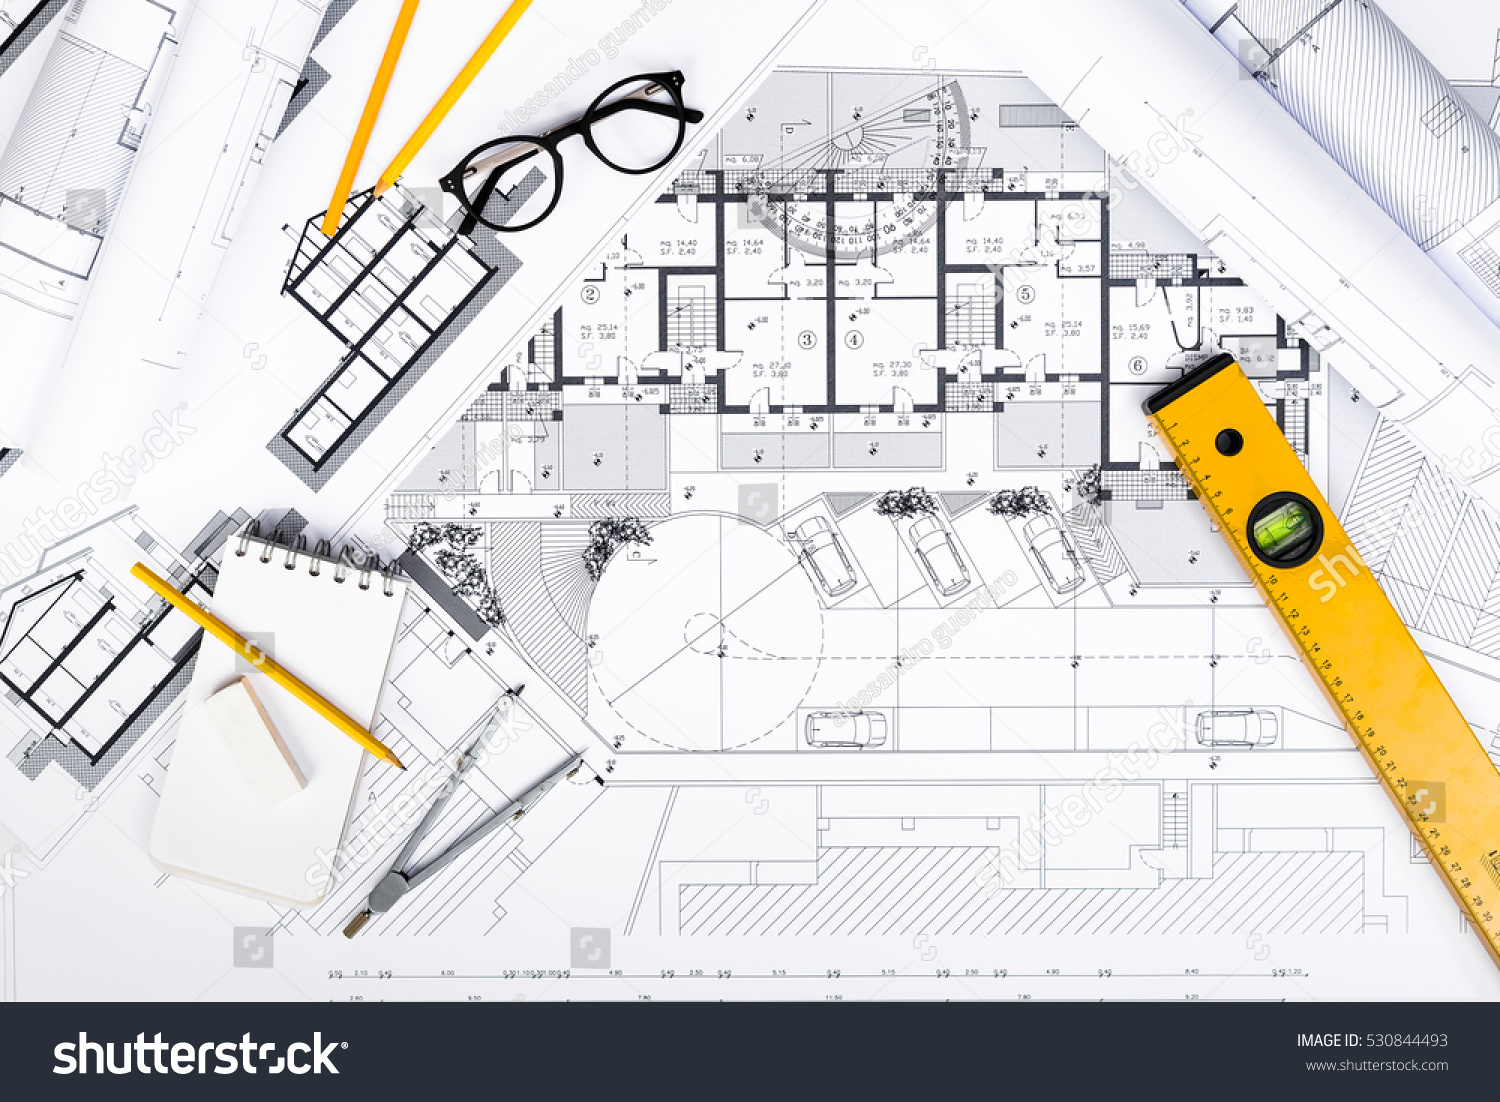 Top view construction plans tablet drawing stock photo for Architectural engineering concepts